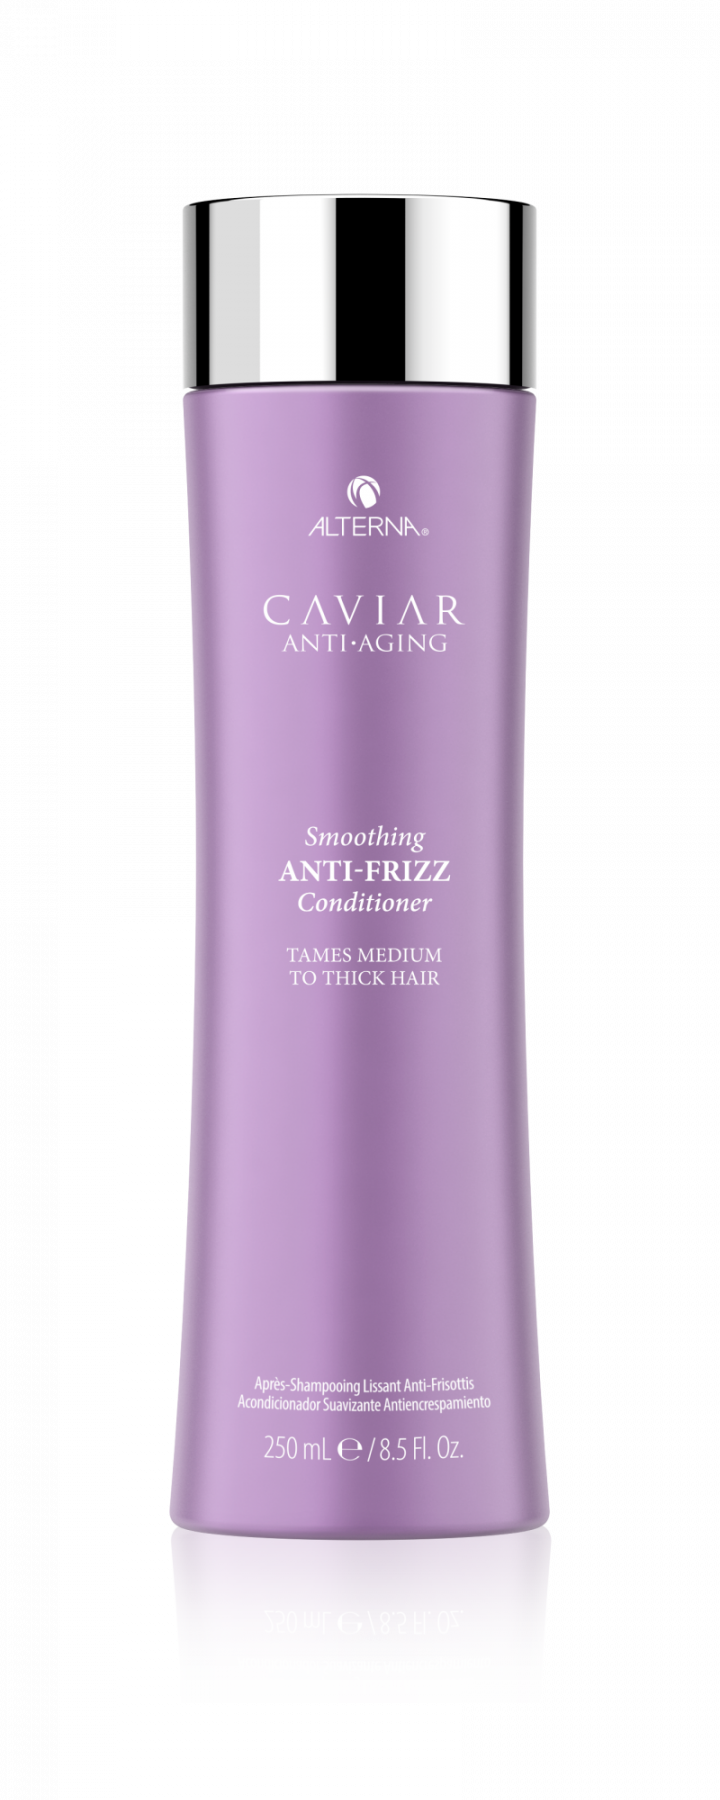 Caviar Anti-Aging SMOOTHING ANTI-FRIZZ Conditioner